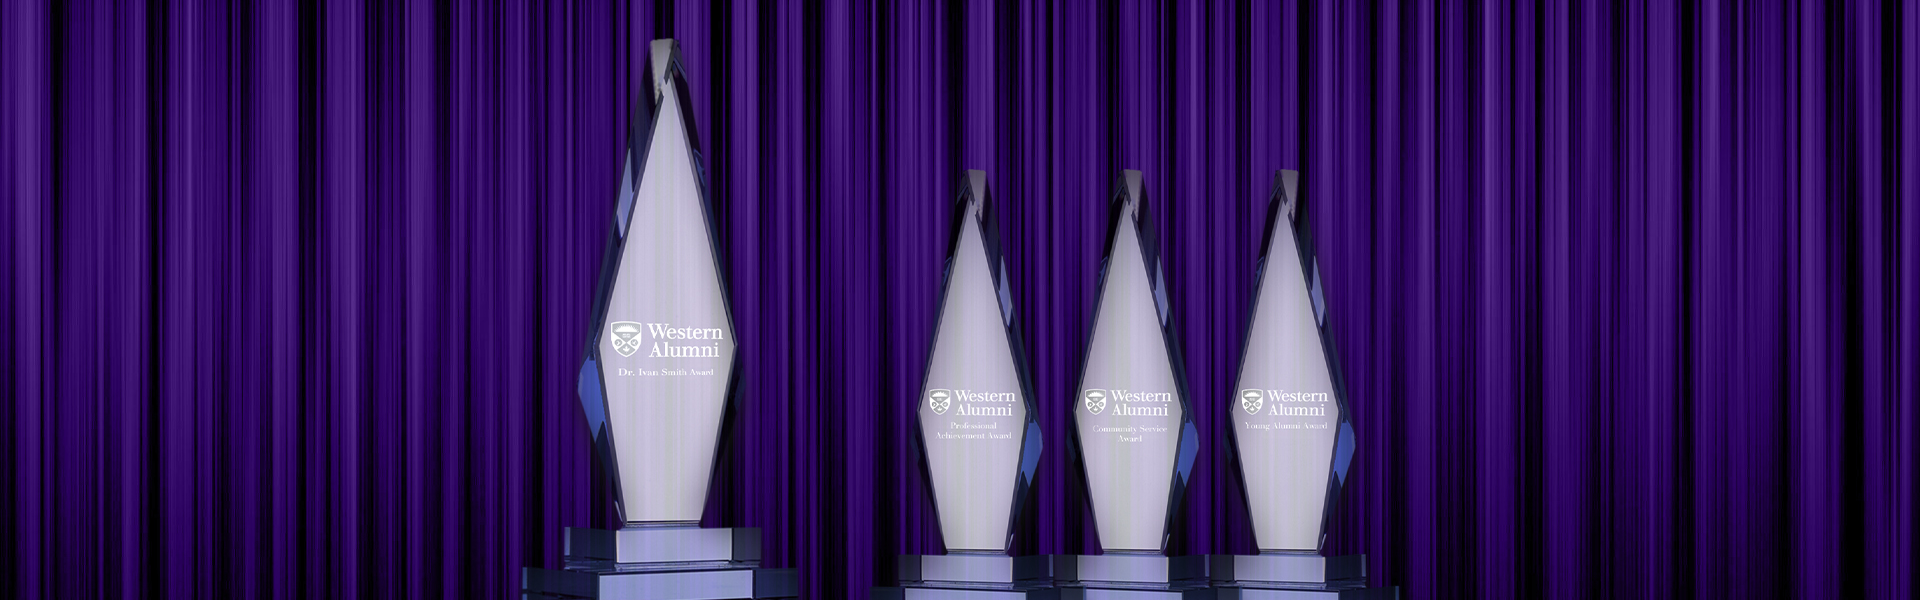 Awards of Merit shown in front of a purple curtain